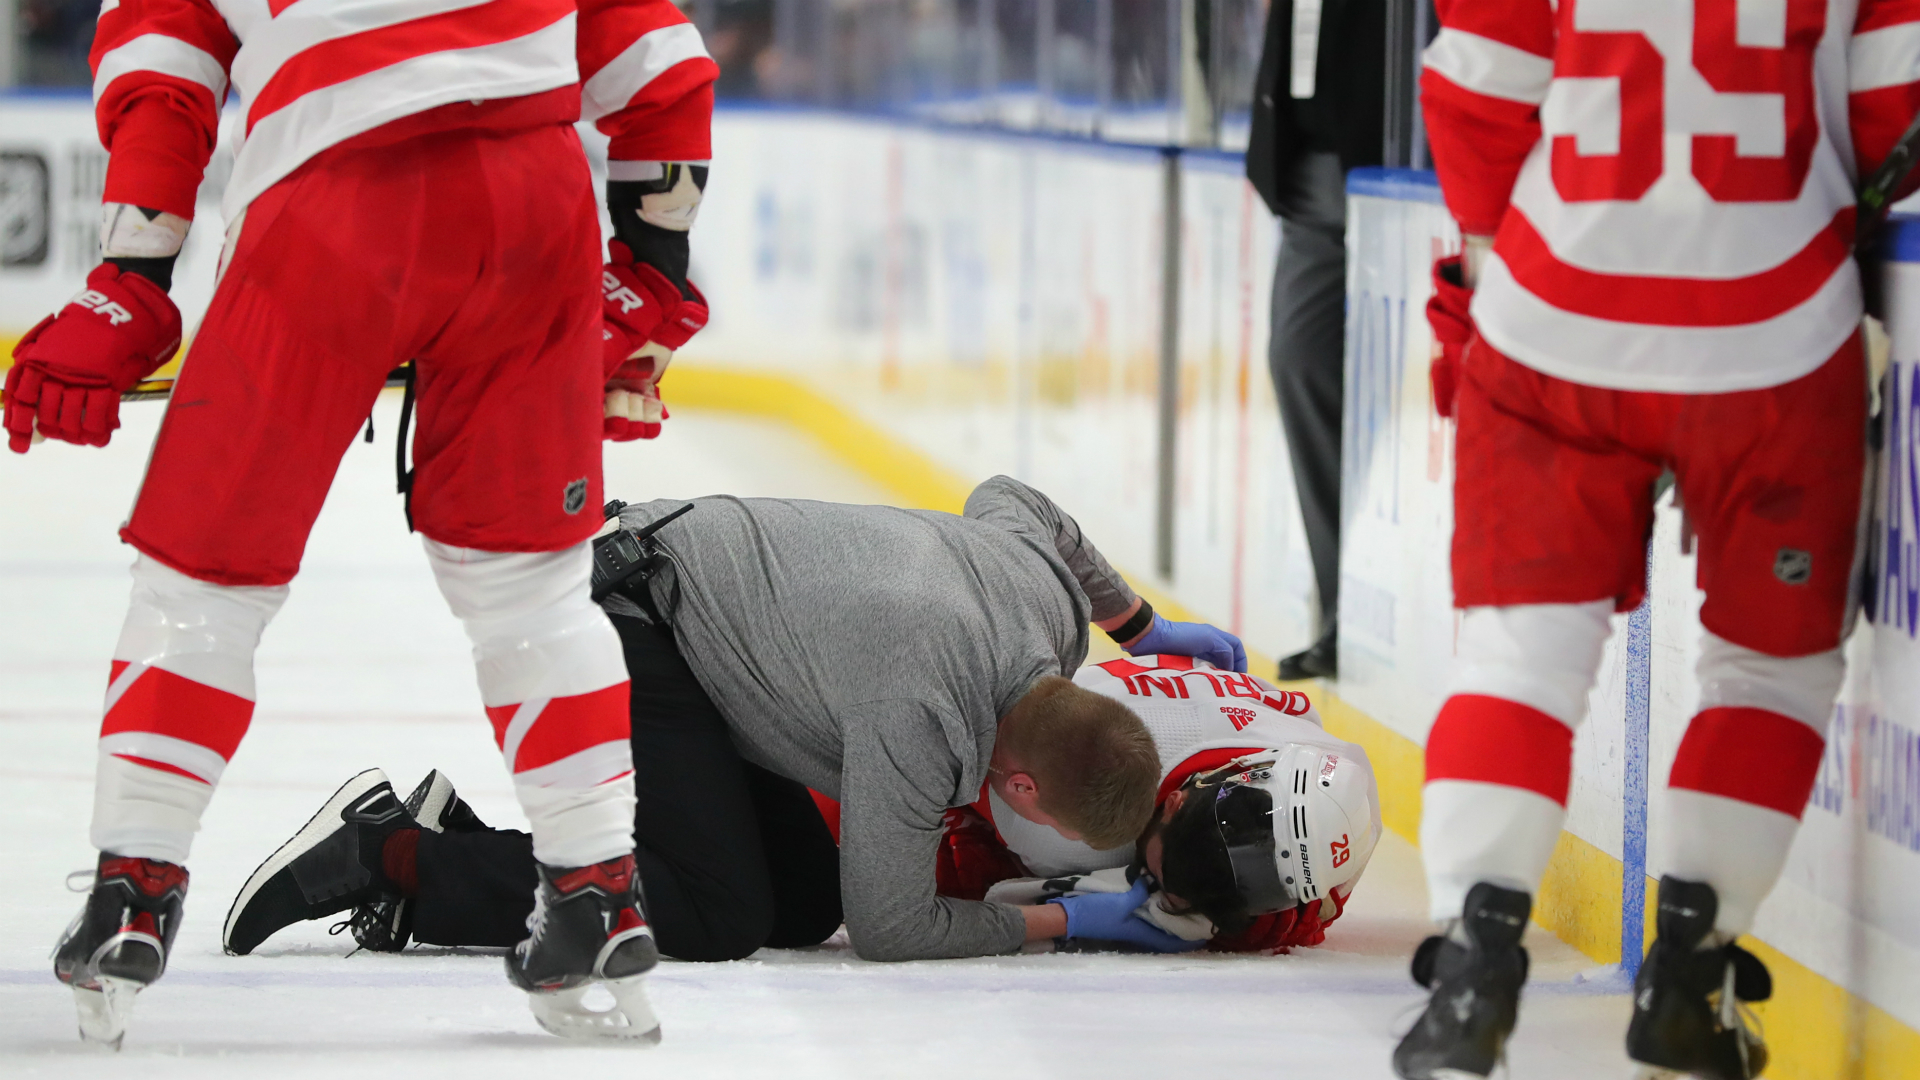 Detroit Red Wings' Brendan Perlini cut in face by skate, receives stitches after scary play